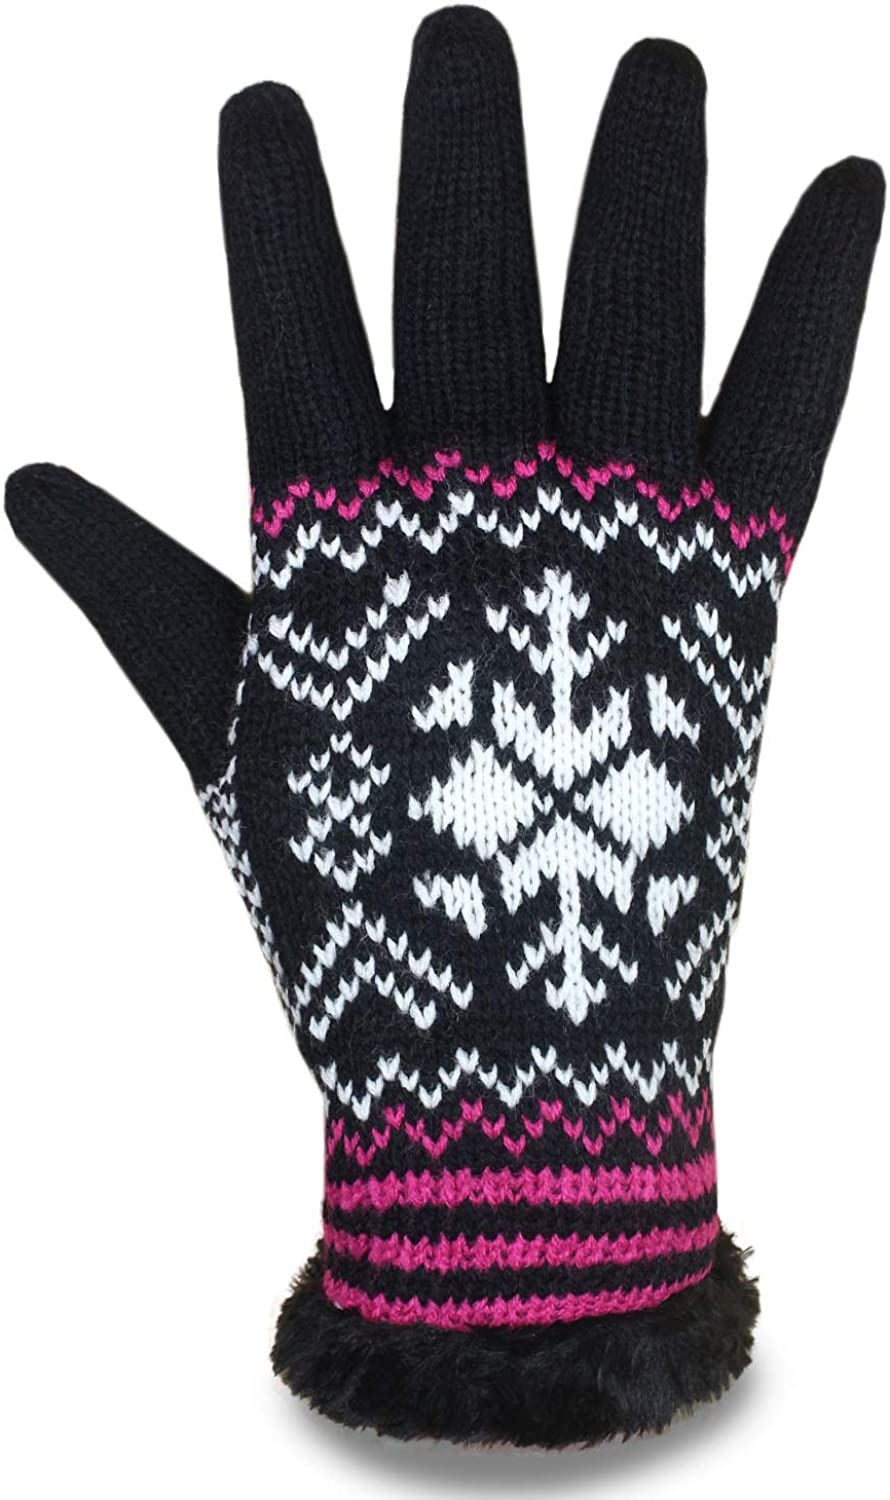 LADIES WOMENS FAIRISLE KNITTED GLOVES WITH FLEECE THERMAL LINING